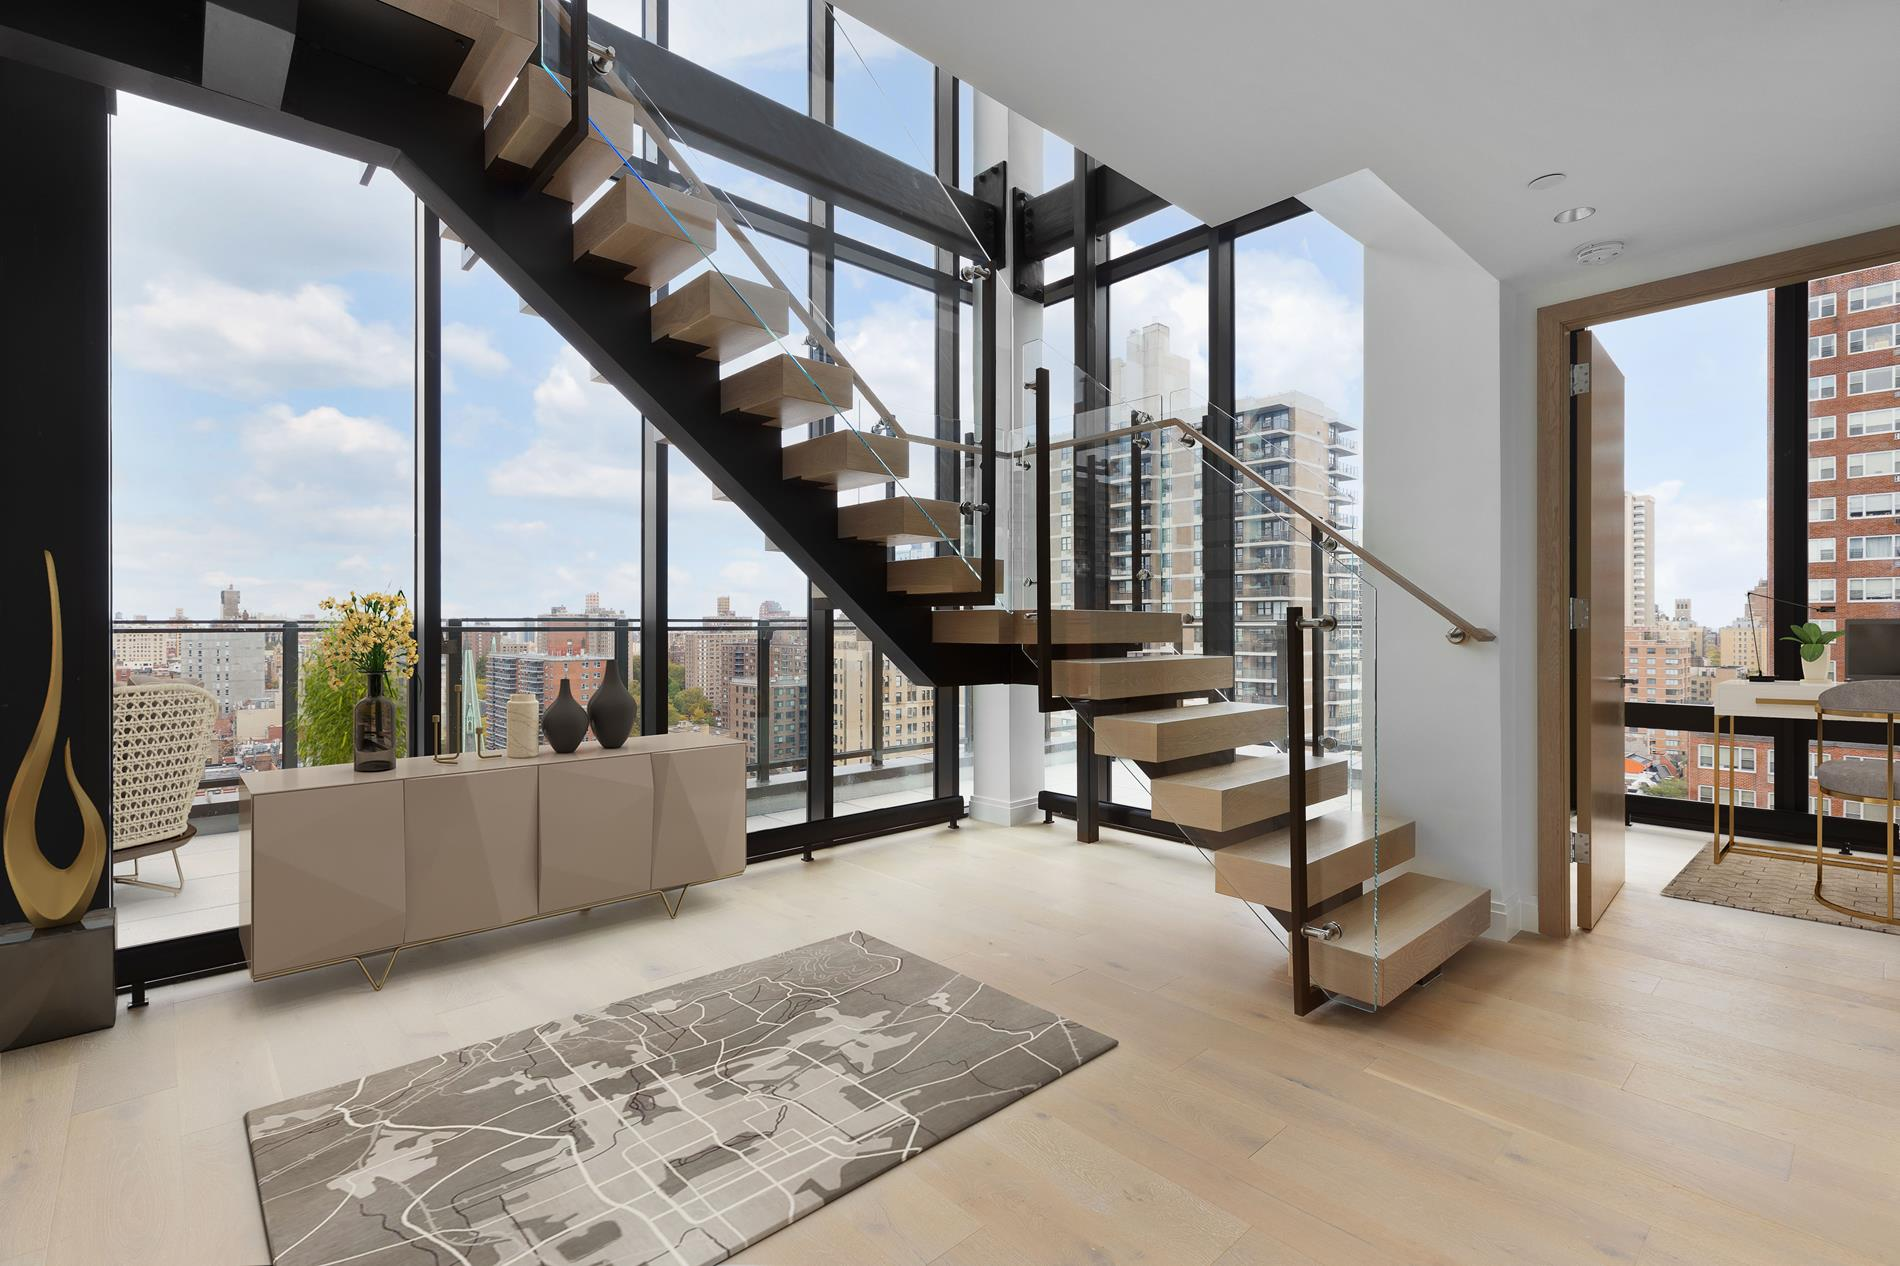 Apartment for sale at 212 West 95th Street, Apt PH-A